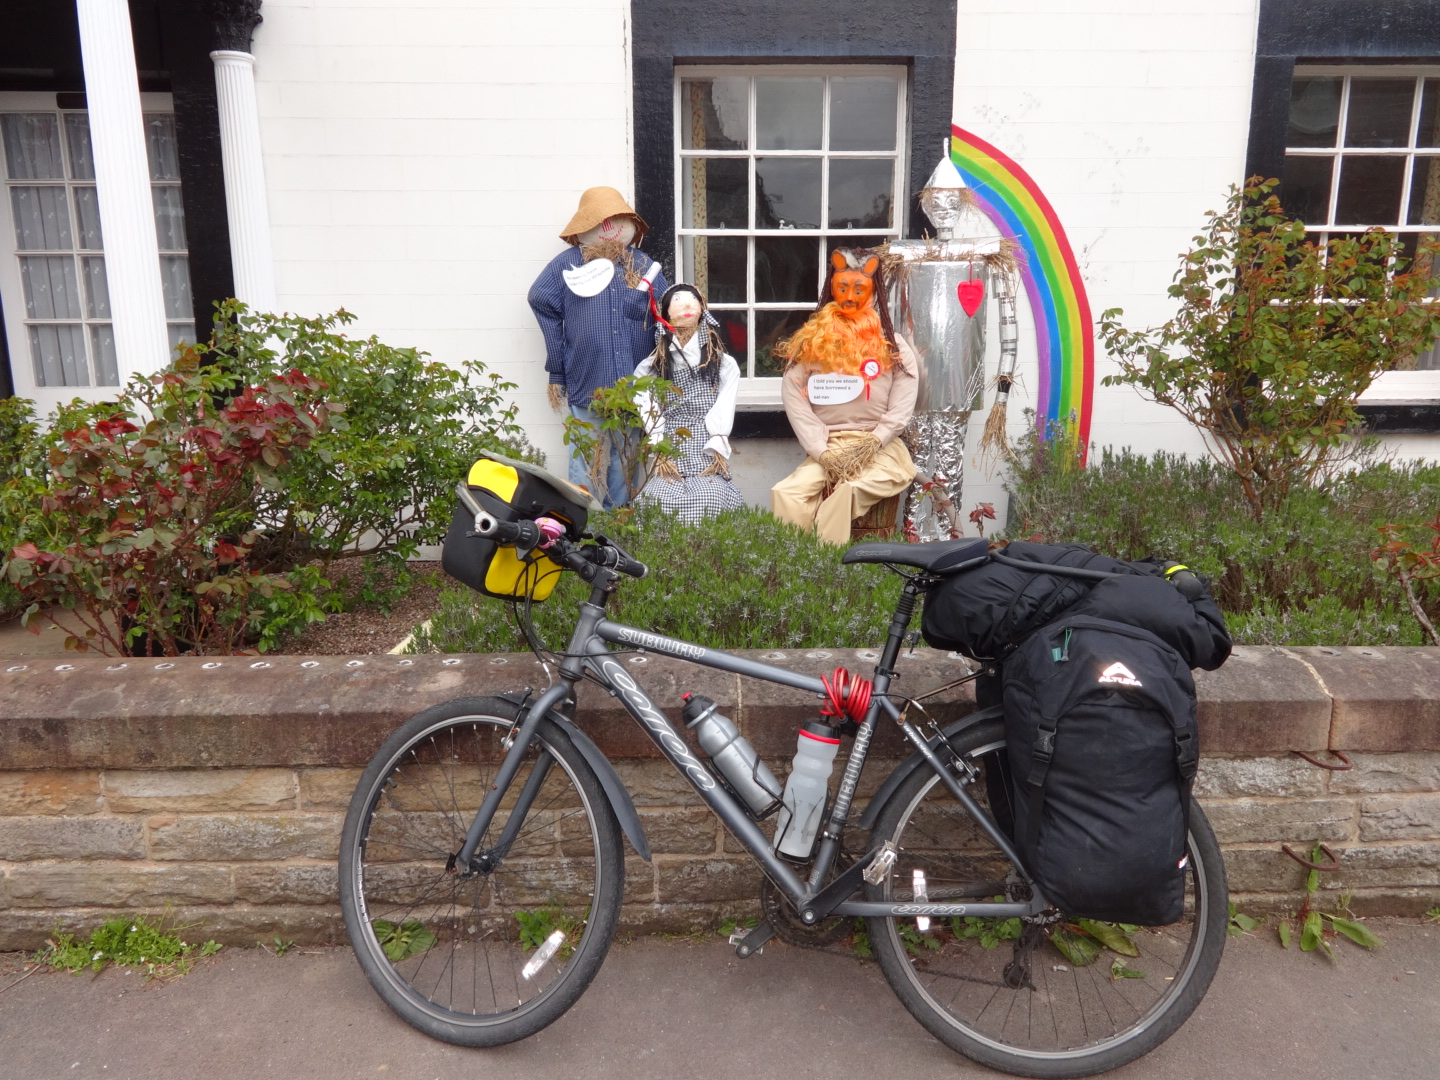 A nice surprise: Tea and cake at the scarecrow festival